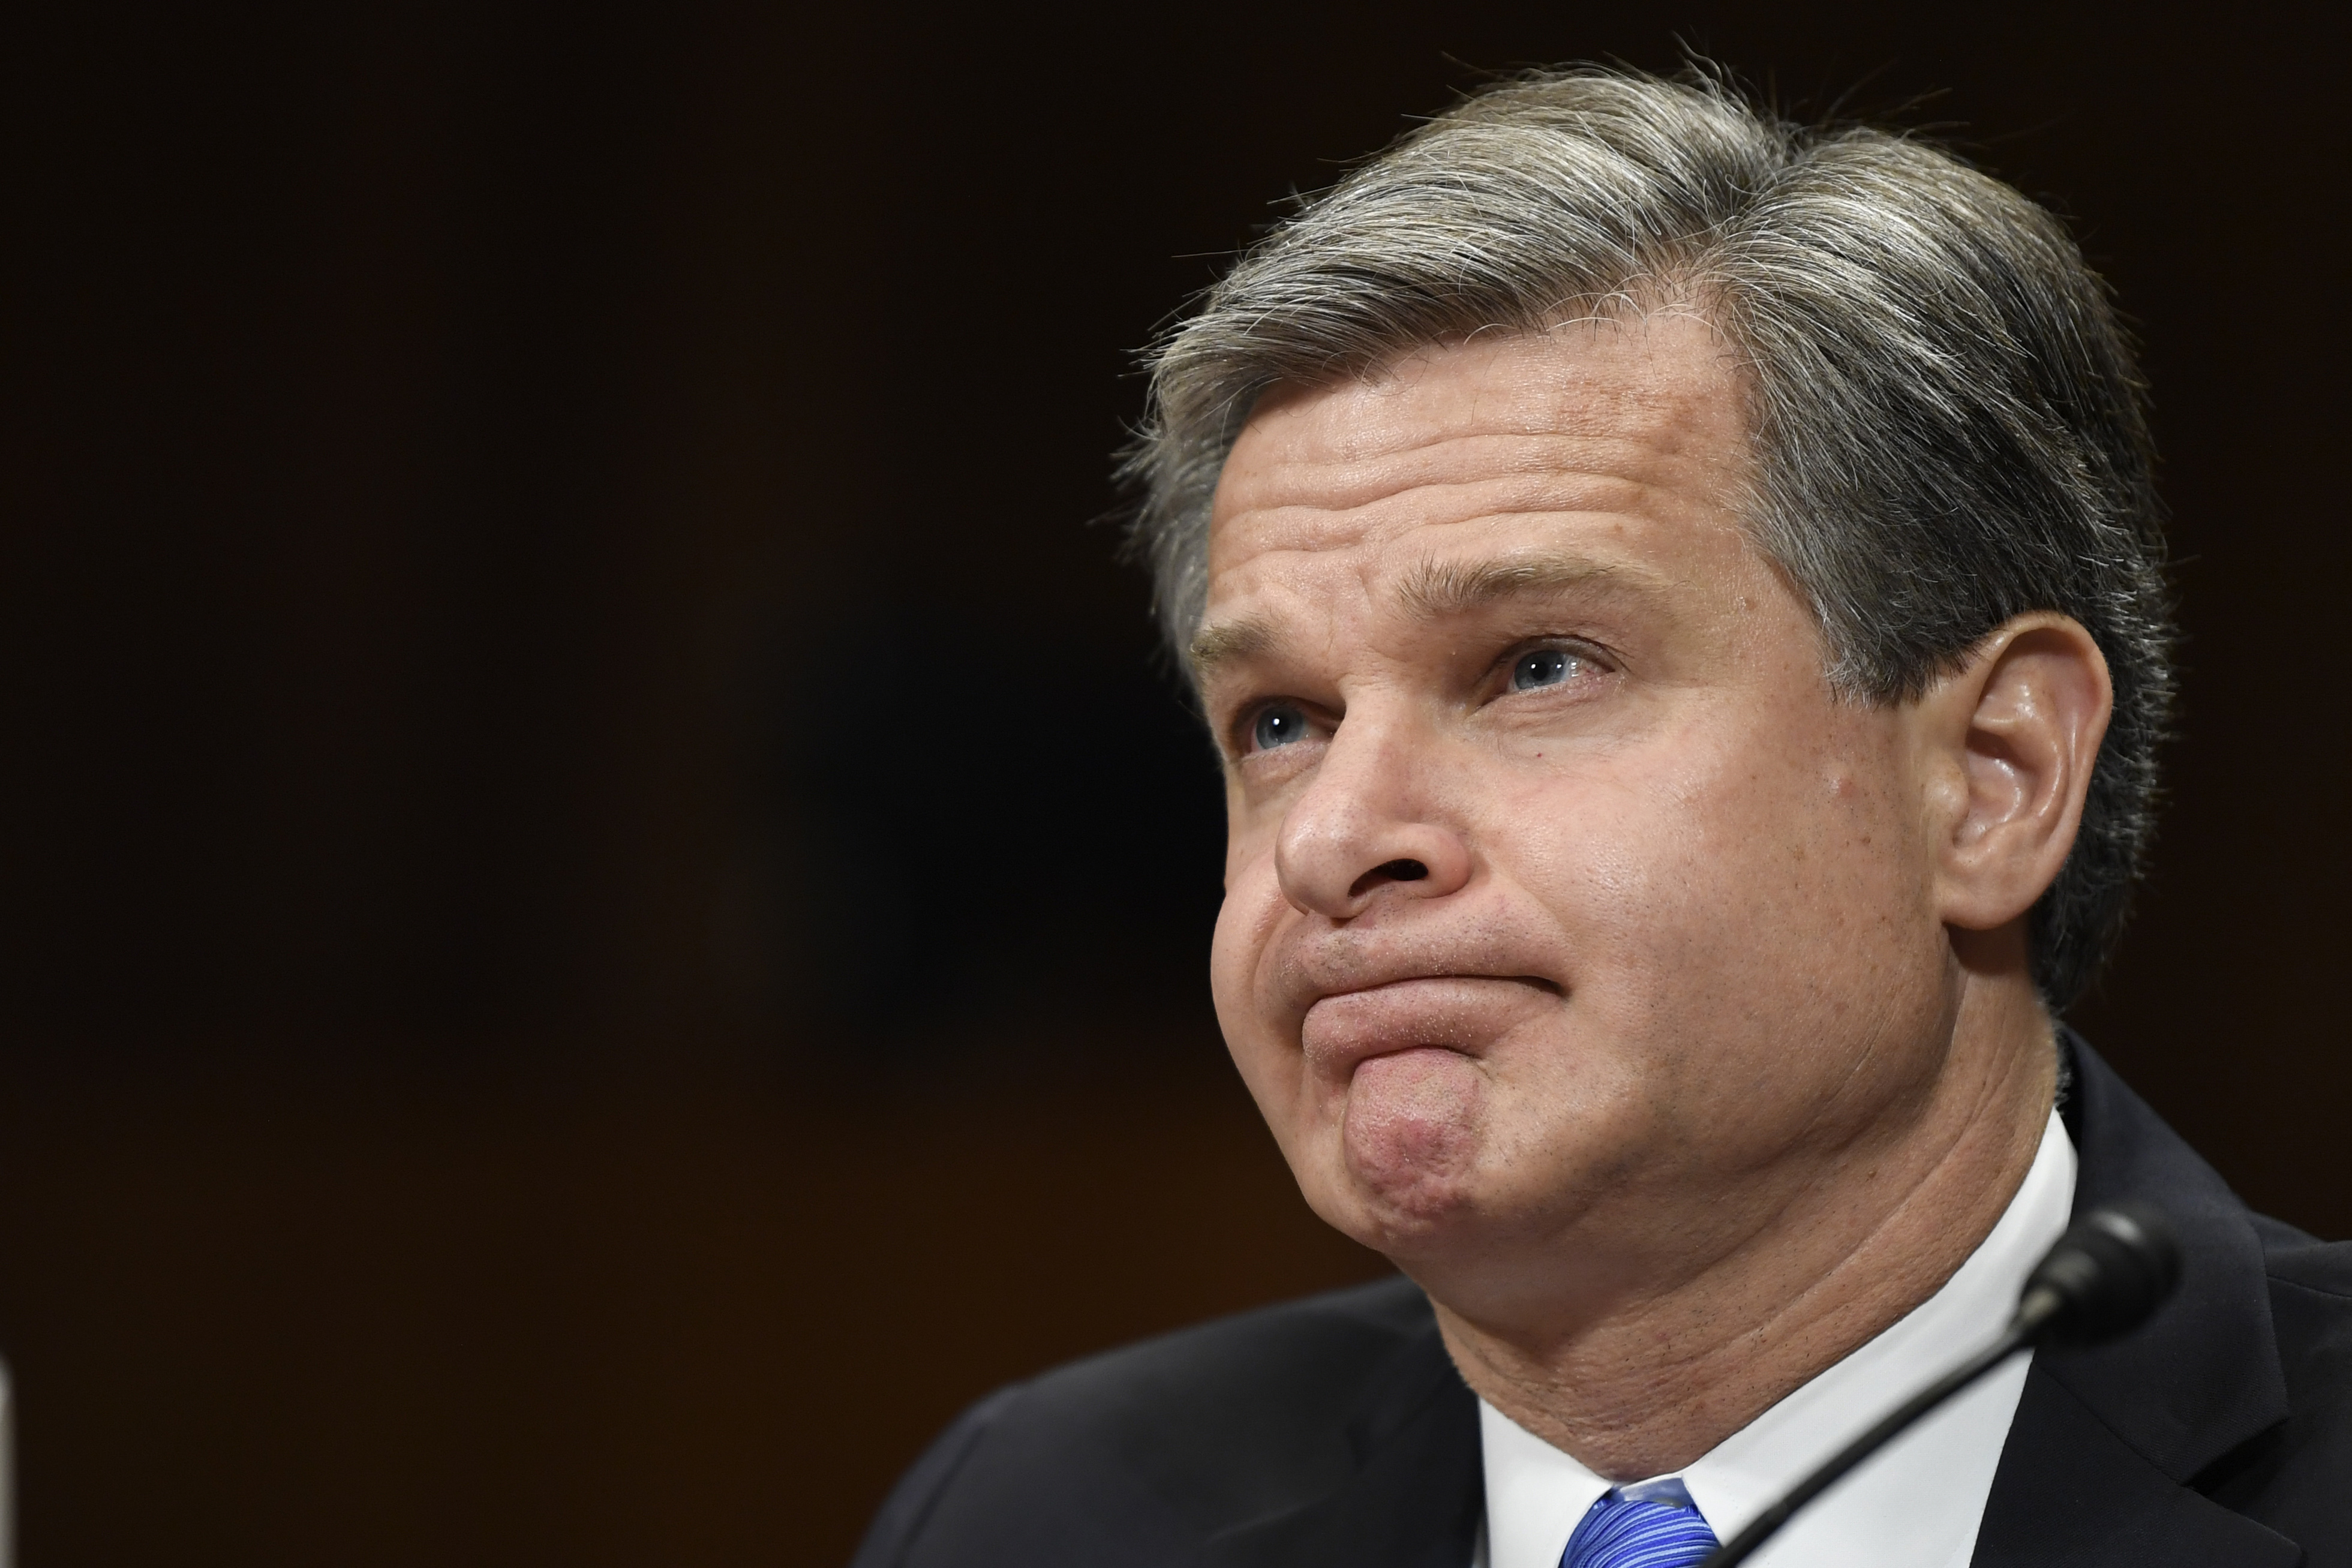 The Latest: FBI chief Wray says China poses a serious threat